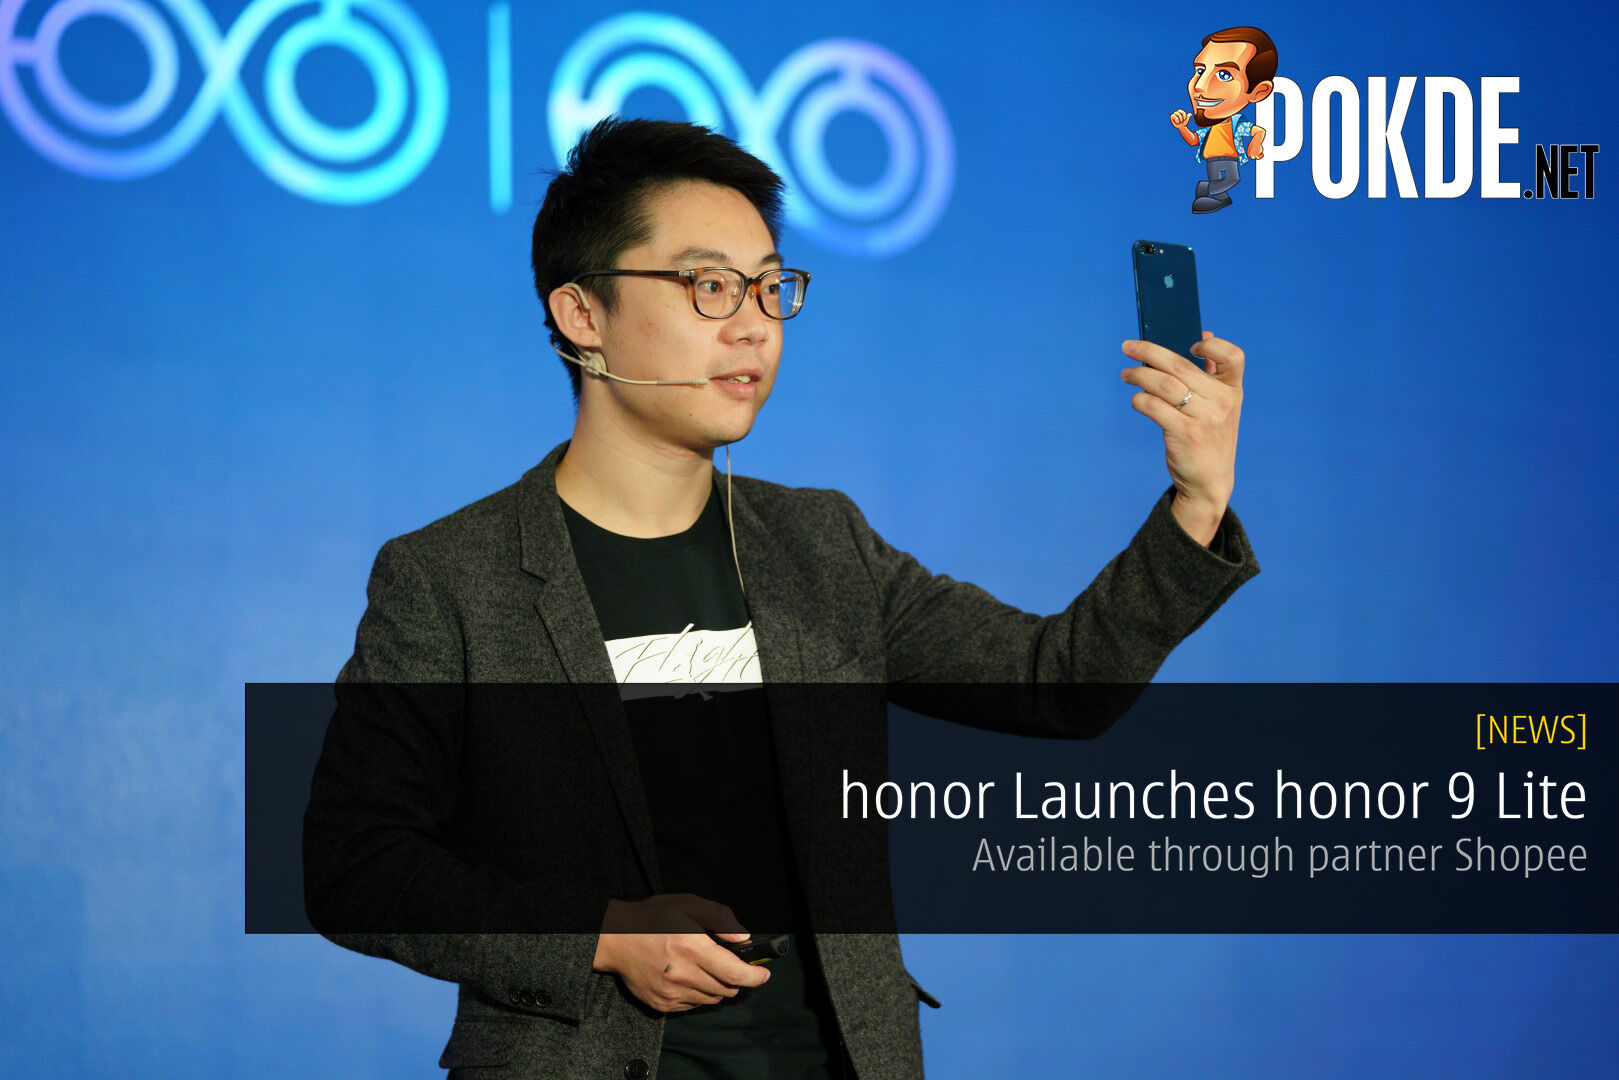 honor Launches honor 9 Lite - Available through partner Shopee 31